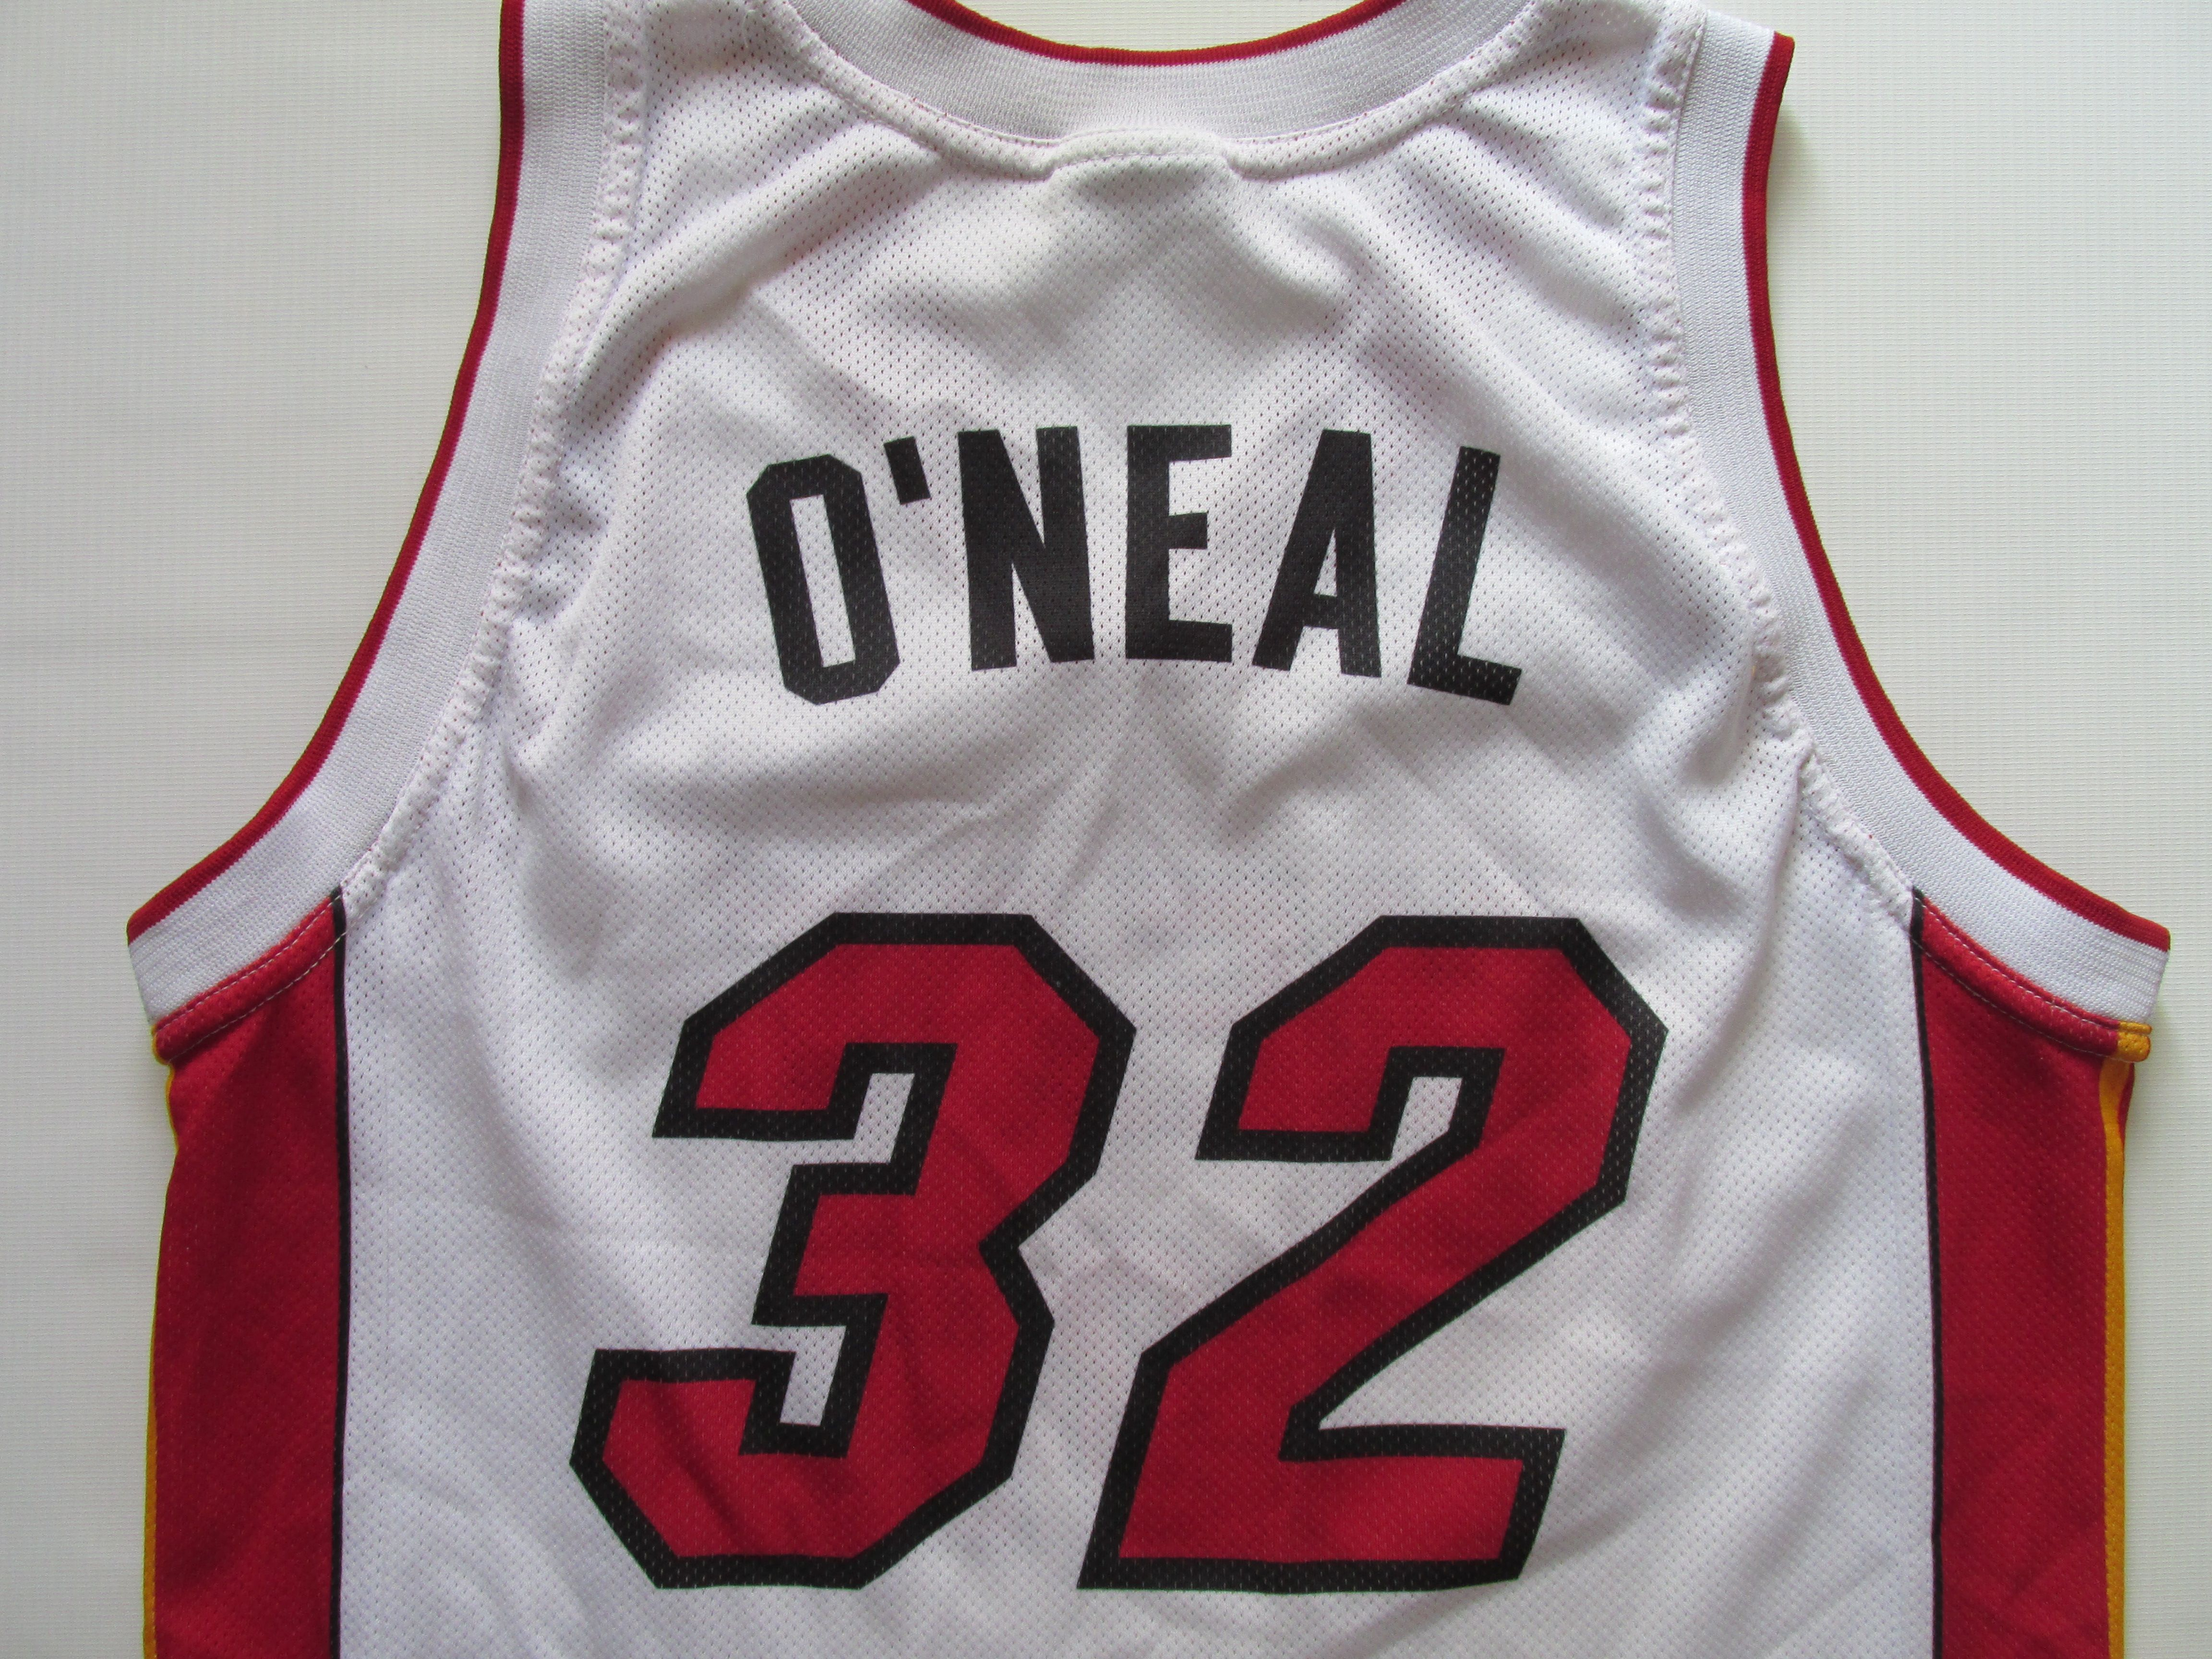 NBA Miami Heat  32 Shaquille O Neal basketball jersey by Champion USA  basket shirt  USA  nba  Oneal  Shaq  champion  miami  Heat  jersey c0c198365